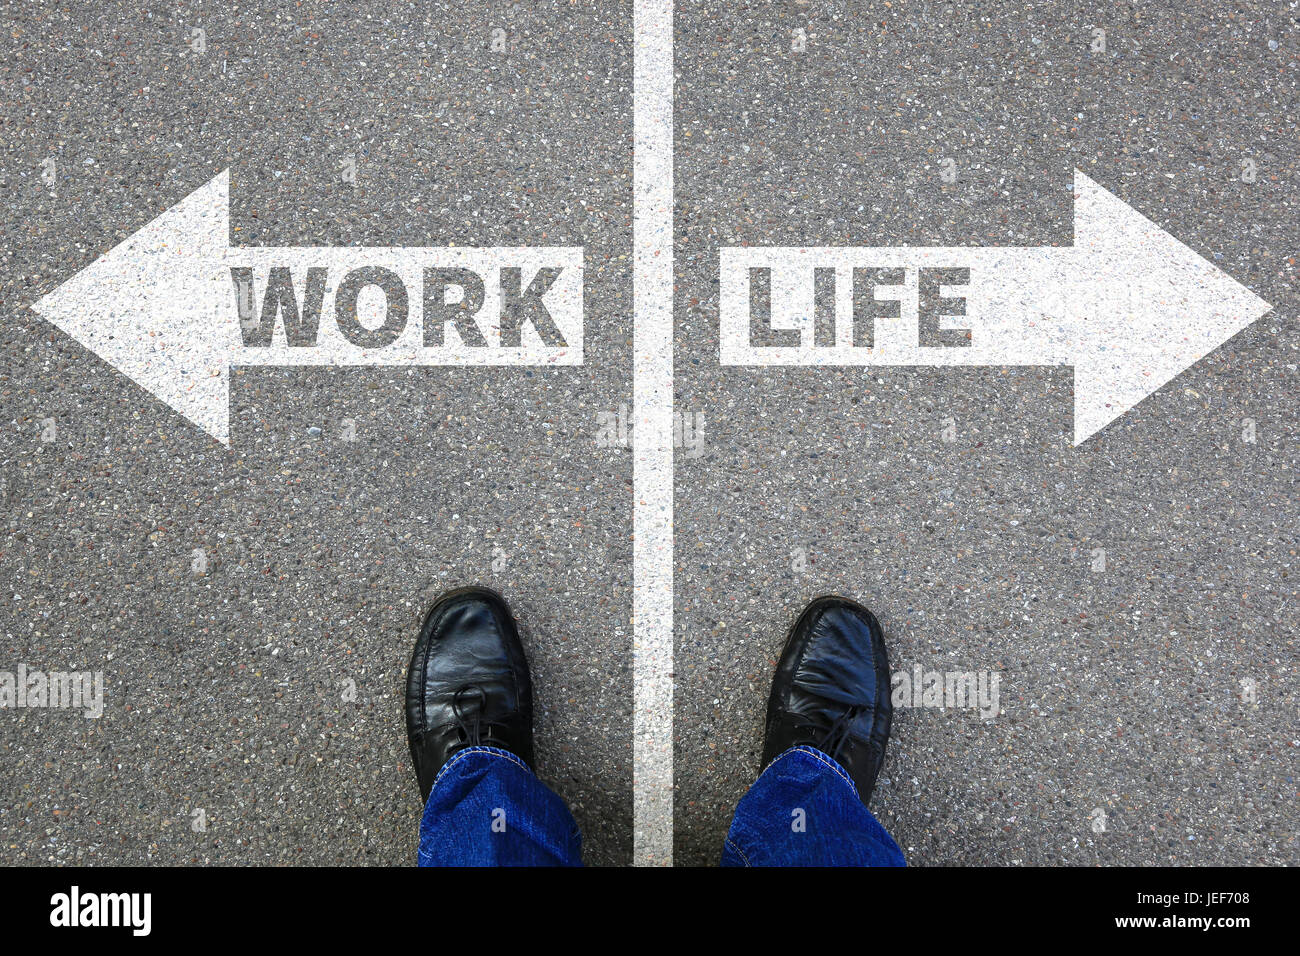 Work life balance living stress stressed relax relaxed health business concept healthy - Stock Image